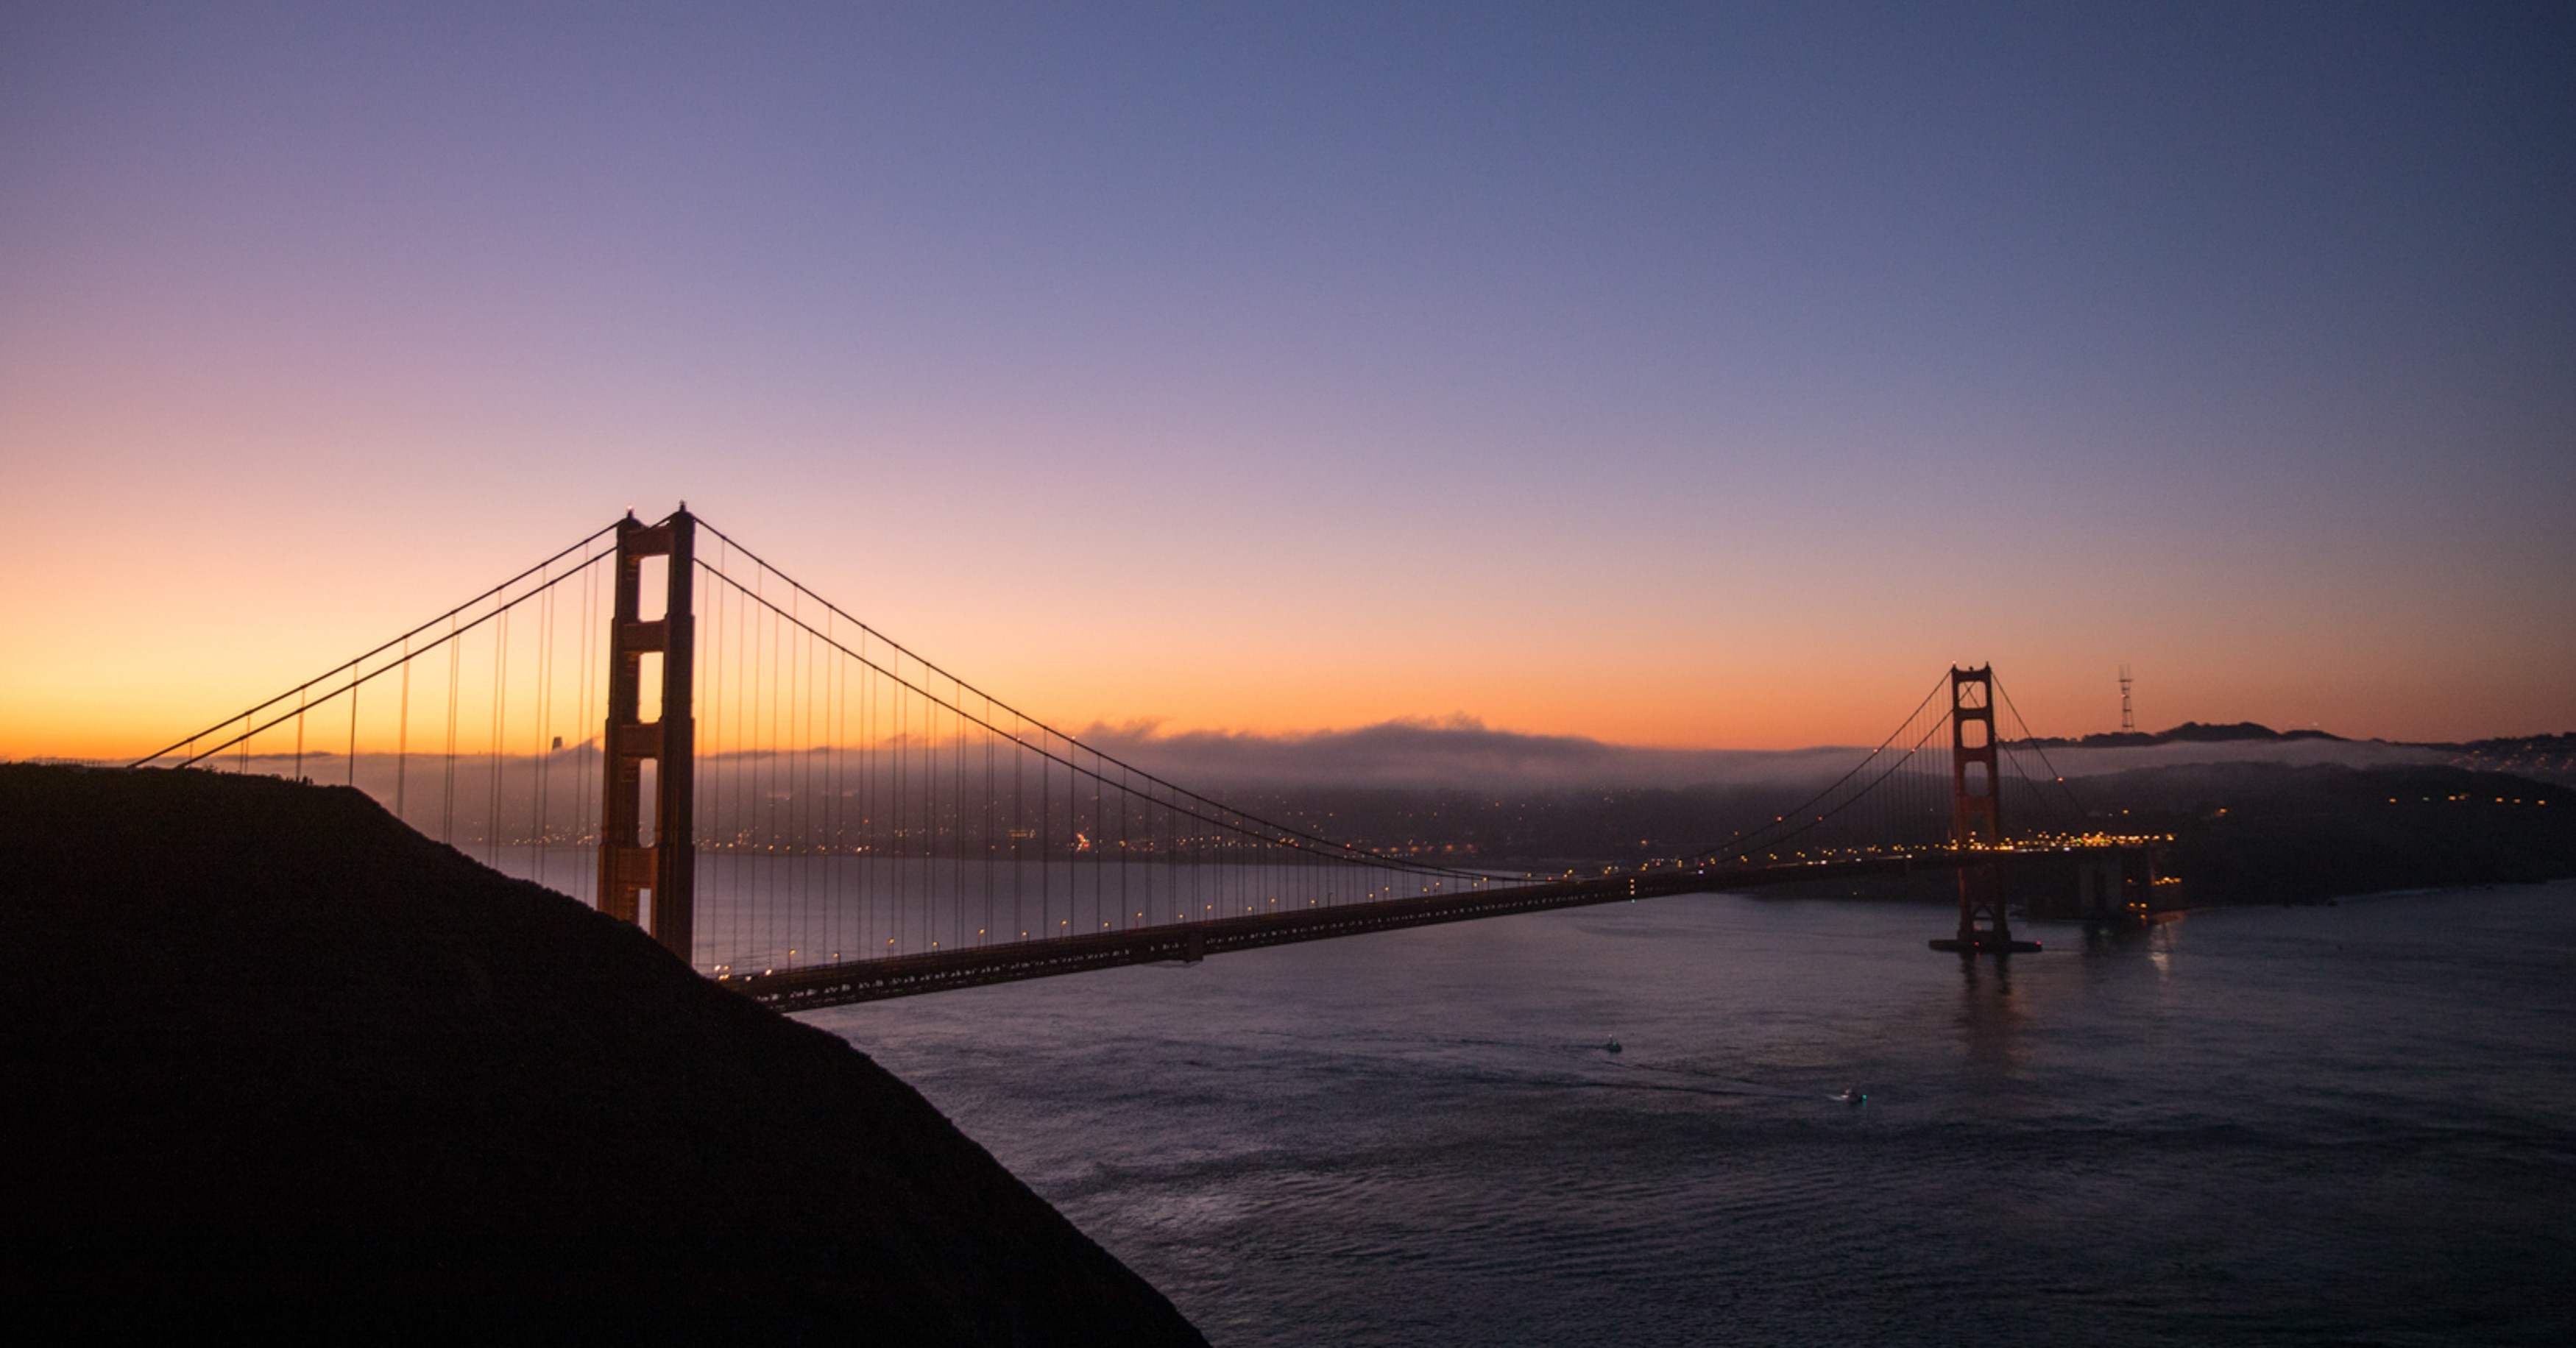 San Francisco is a popular location for filmmakers